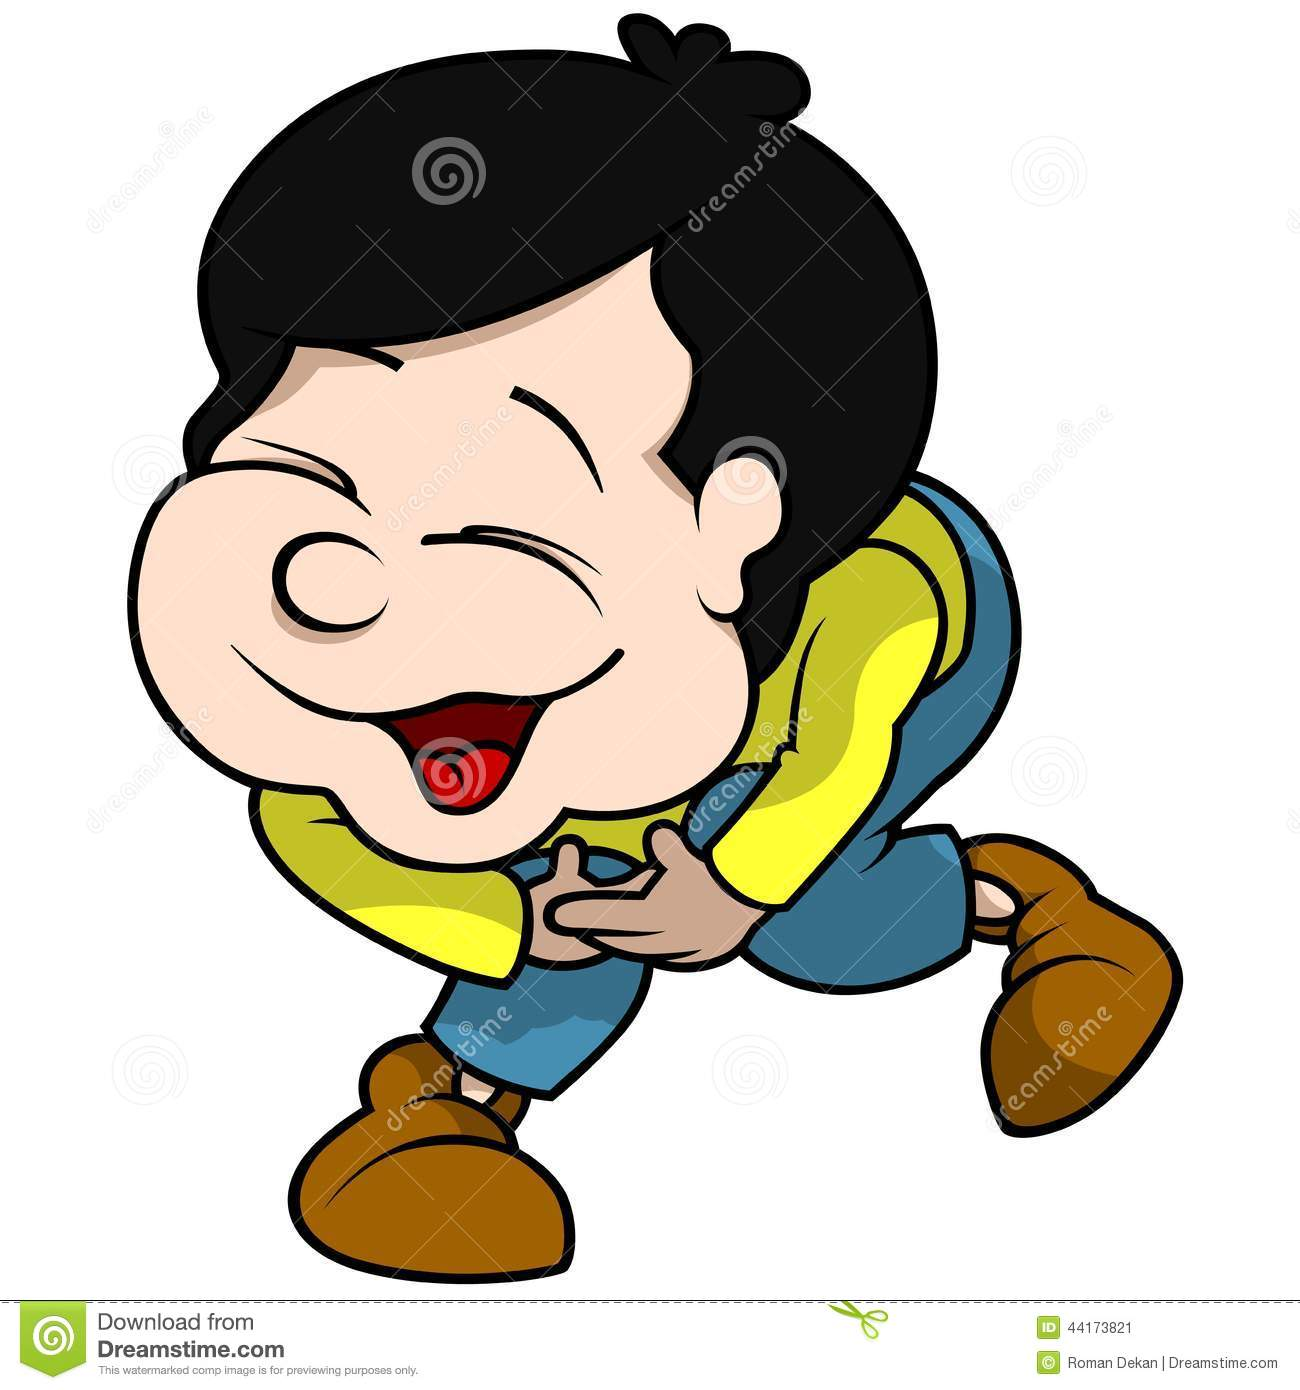 Boy Laughing - Cartoon Illustration, Vector.